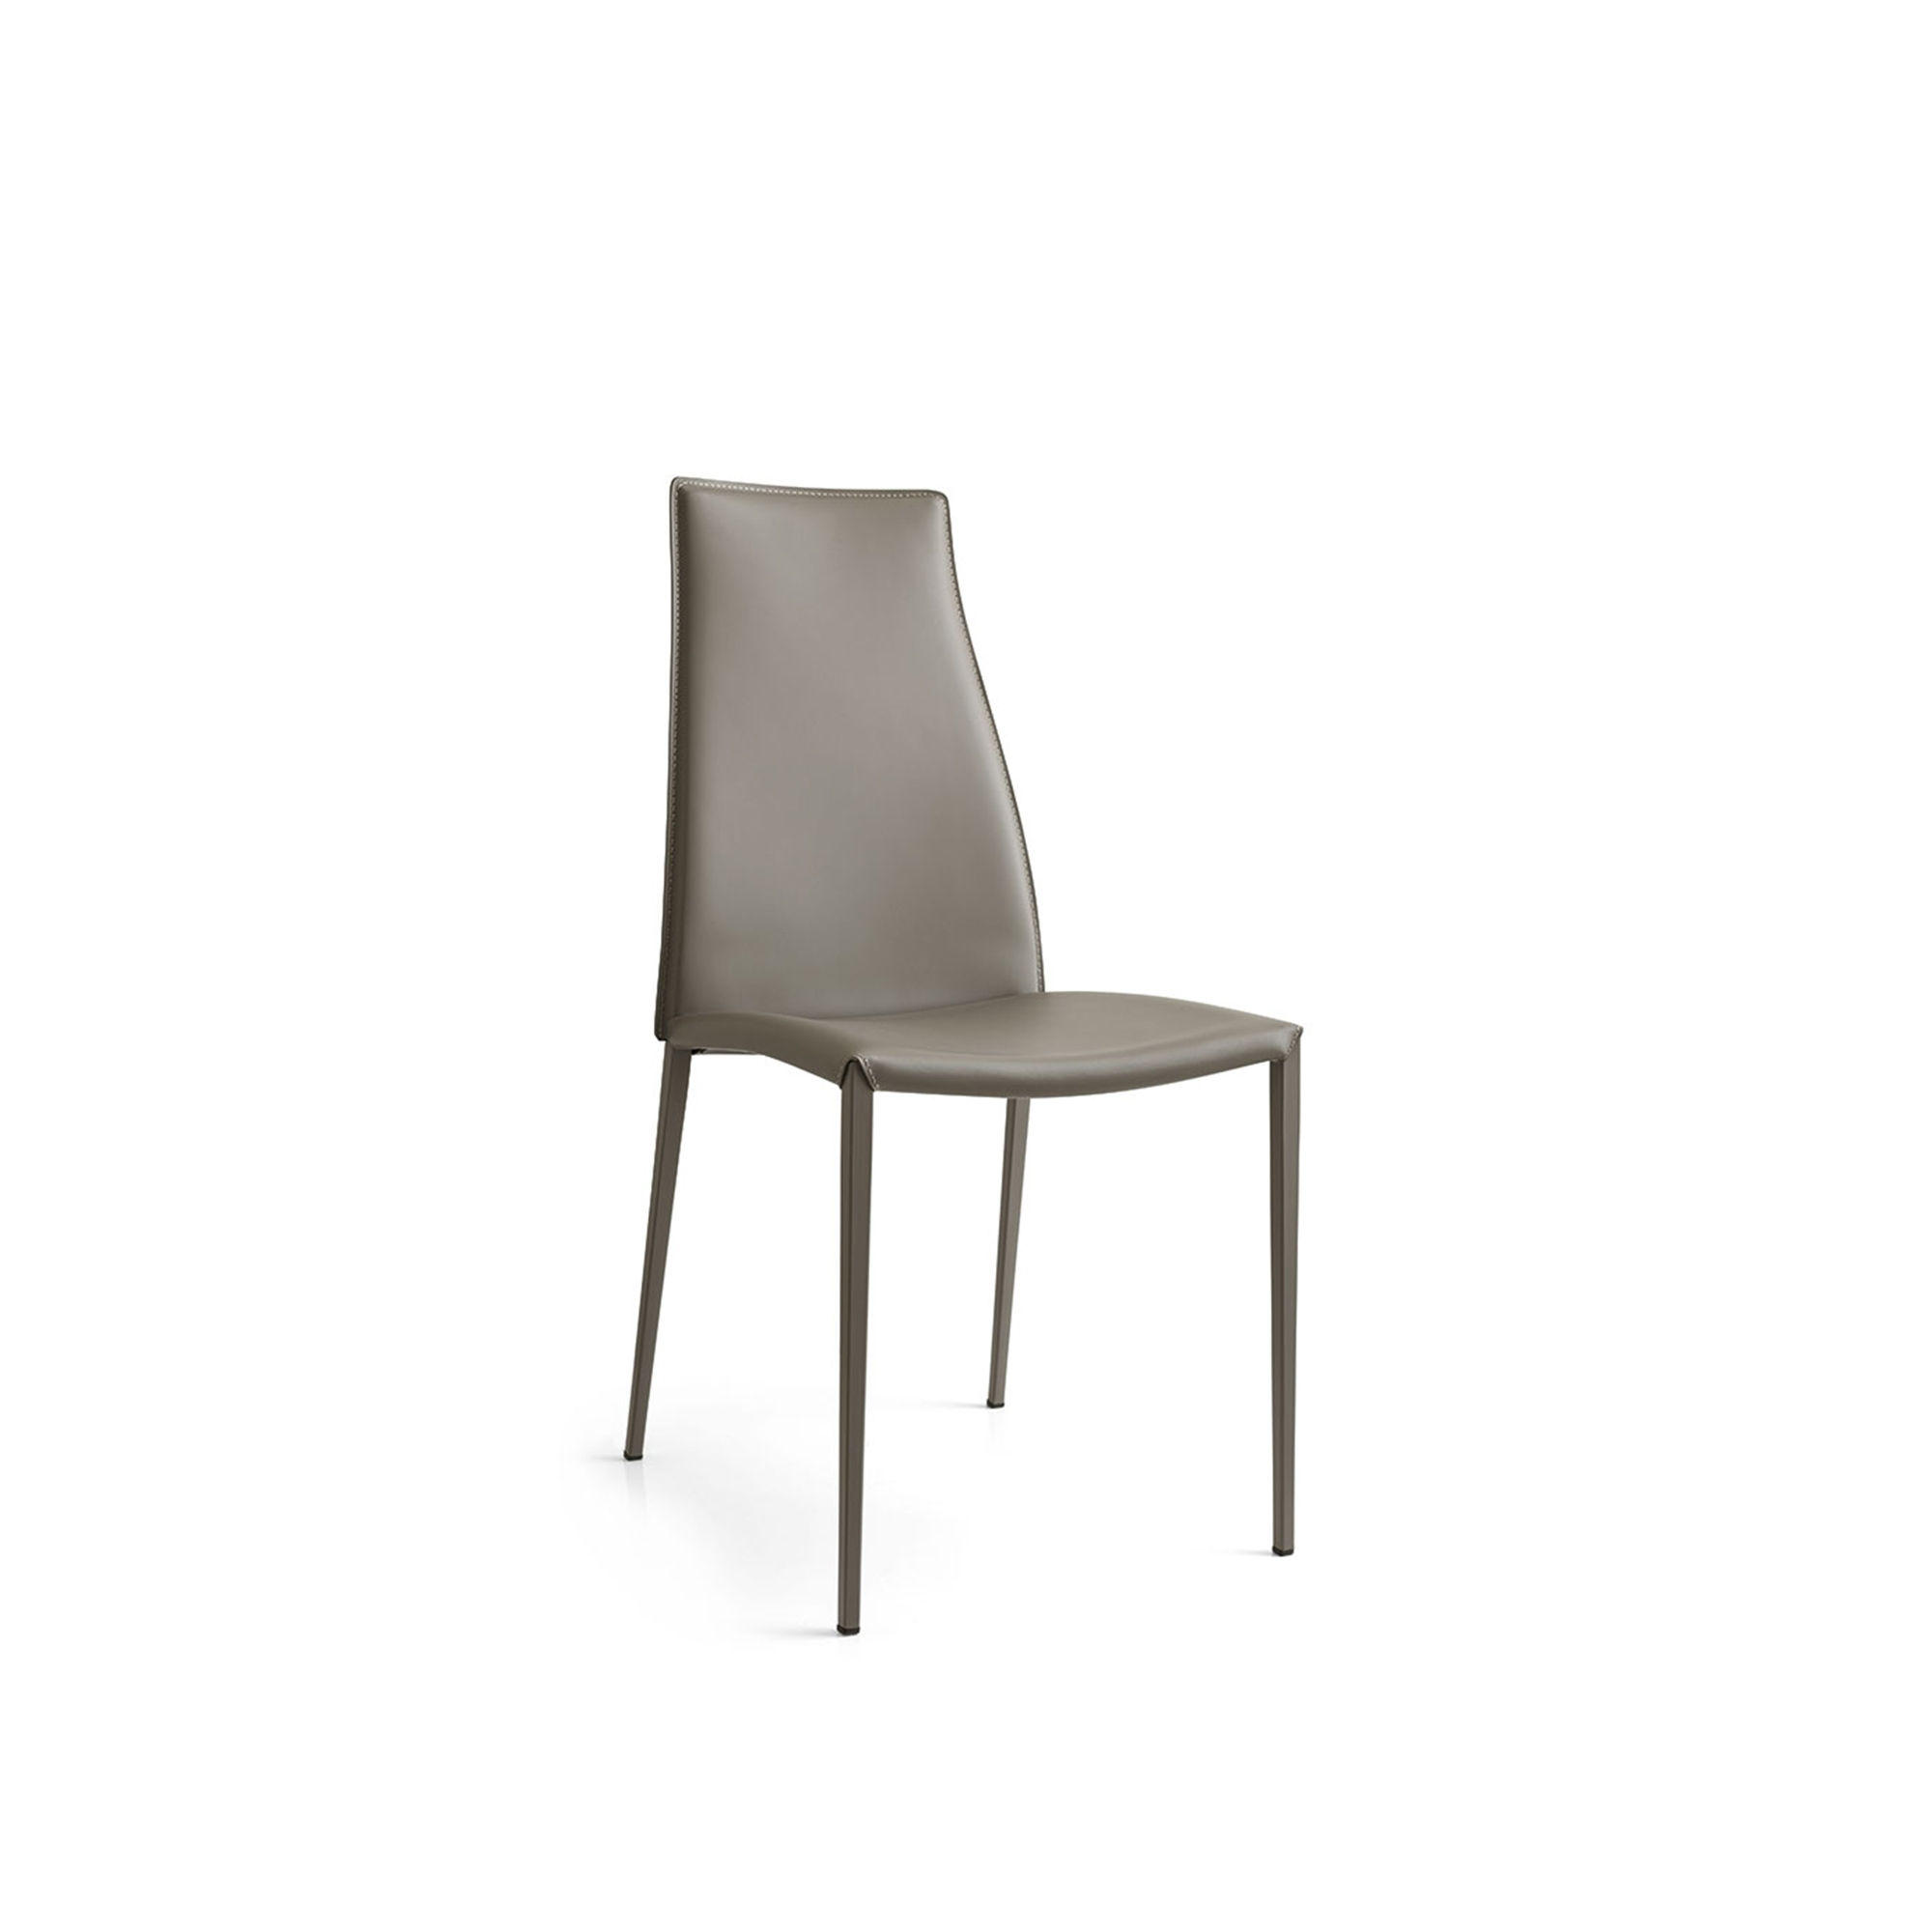 Calligaris Dining Chairs Calligaris Aida Dining Chair